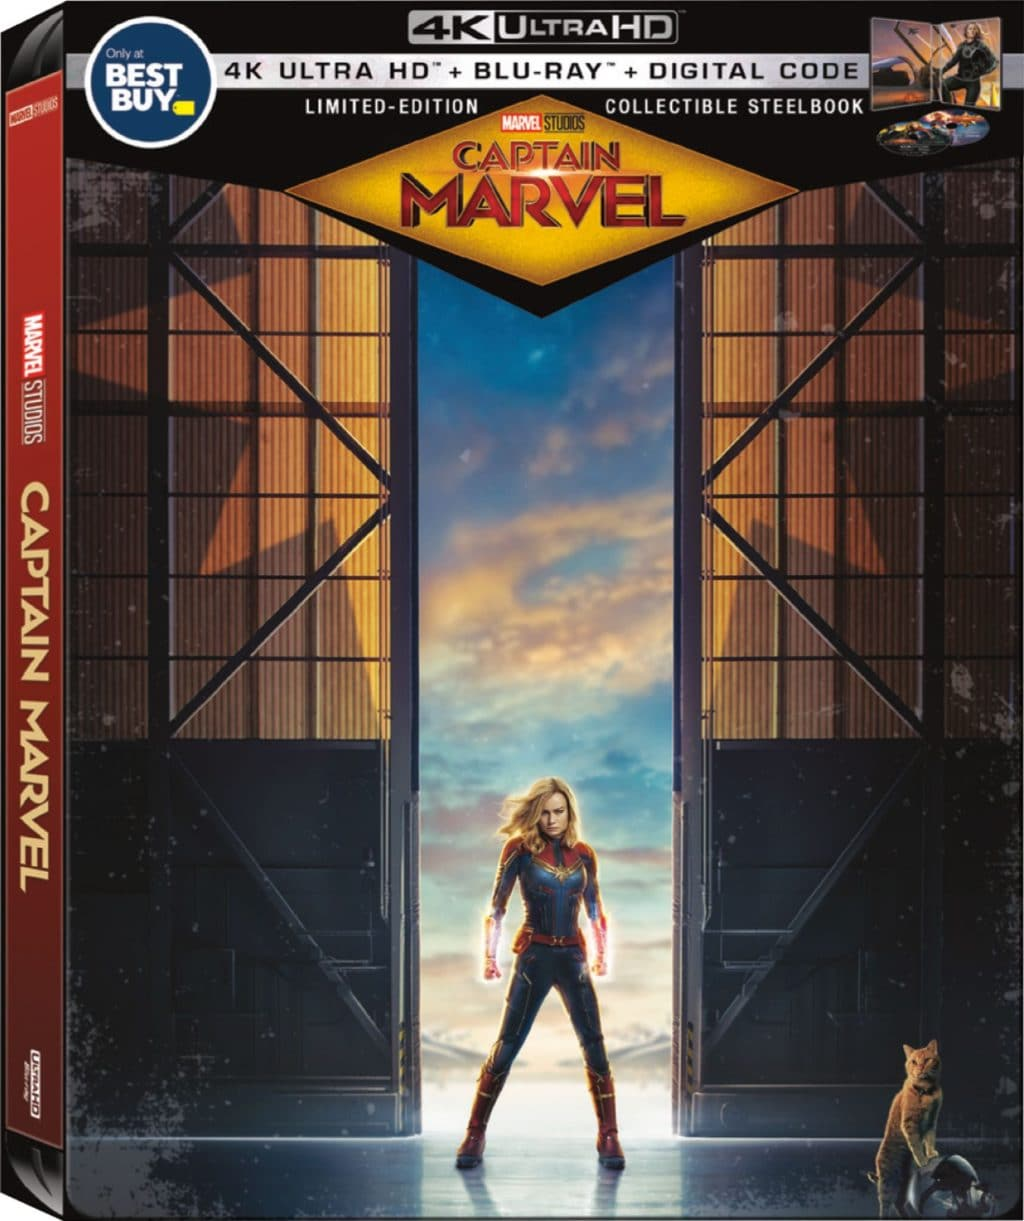 CAPTAIN MARVEL EXCLUSIVE STEEL BOOK